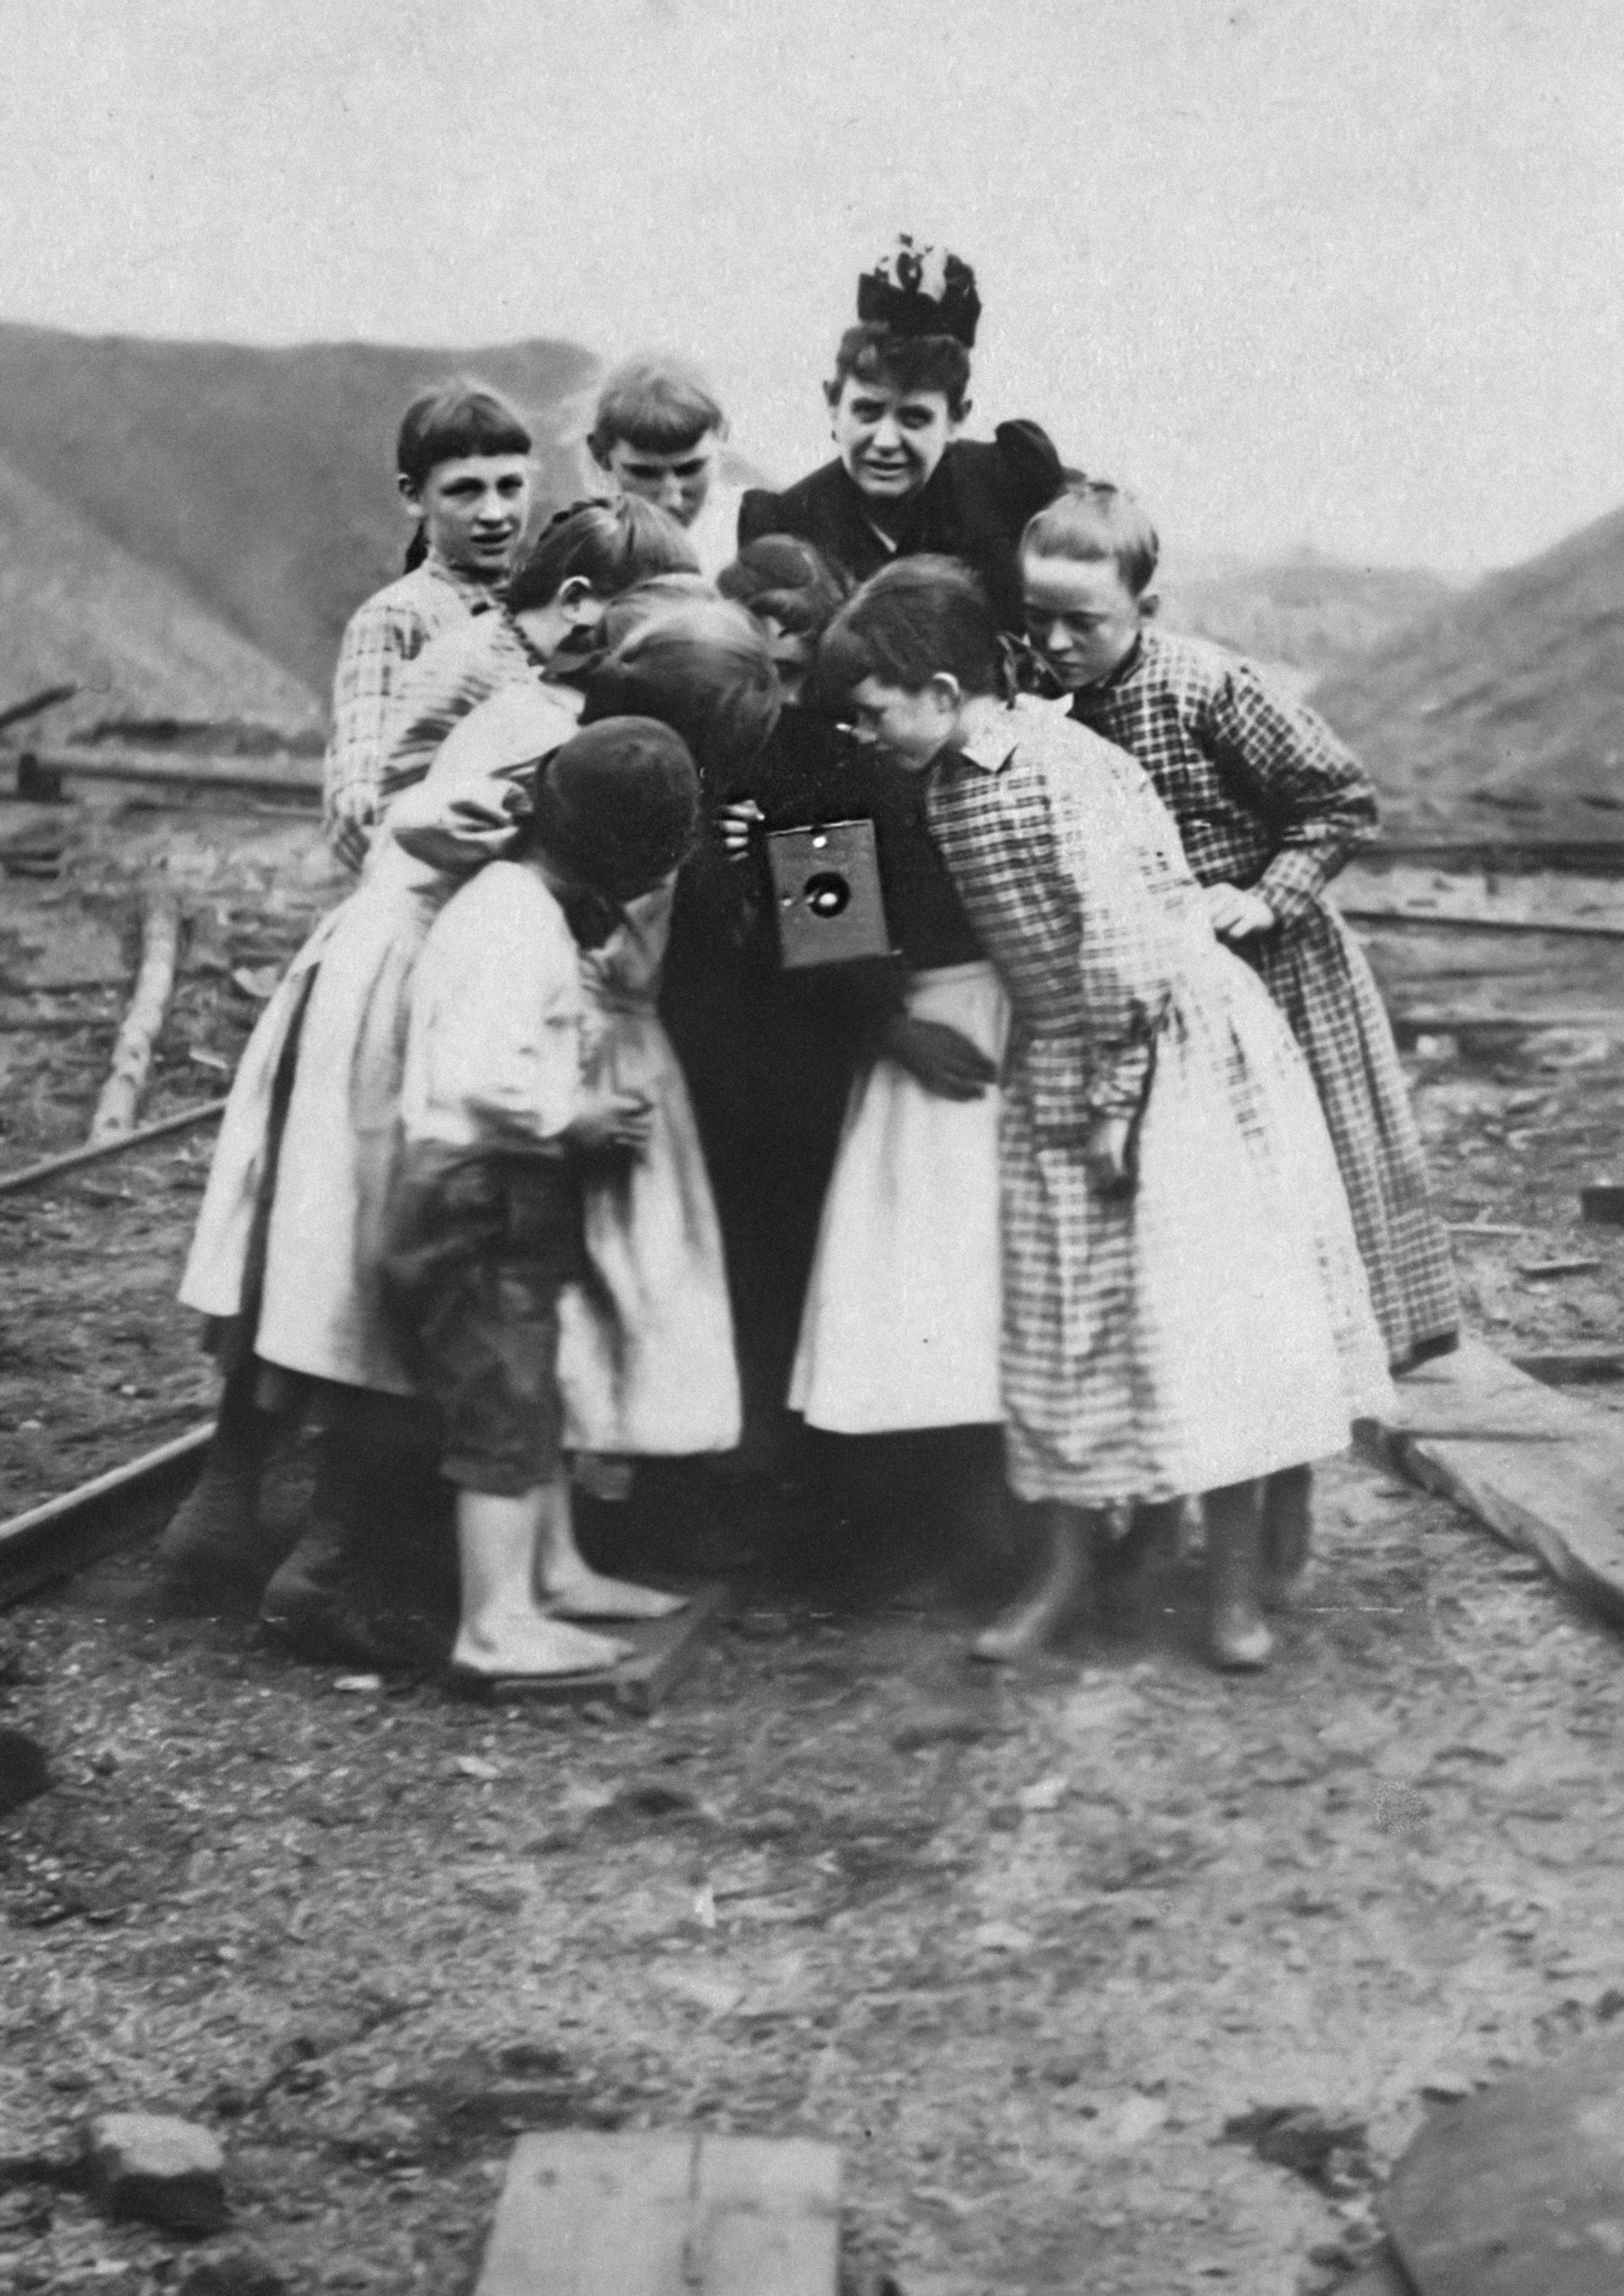 Frances Benjamin Johnston with group of children looking at her camera